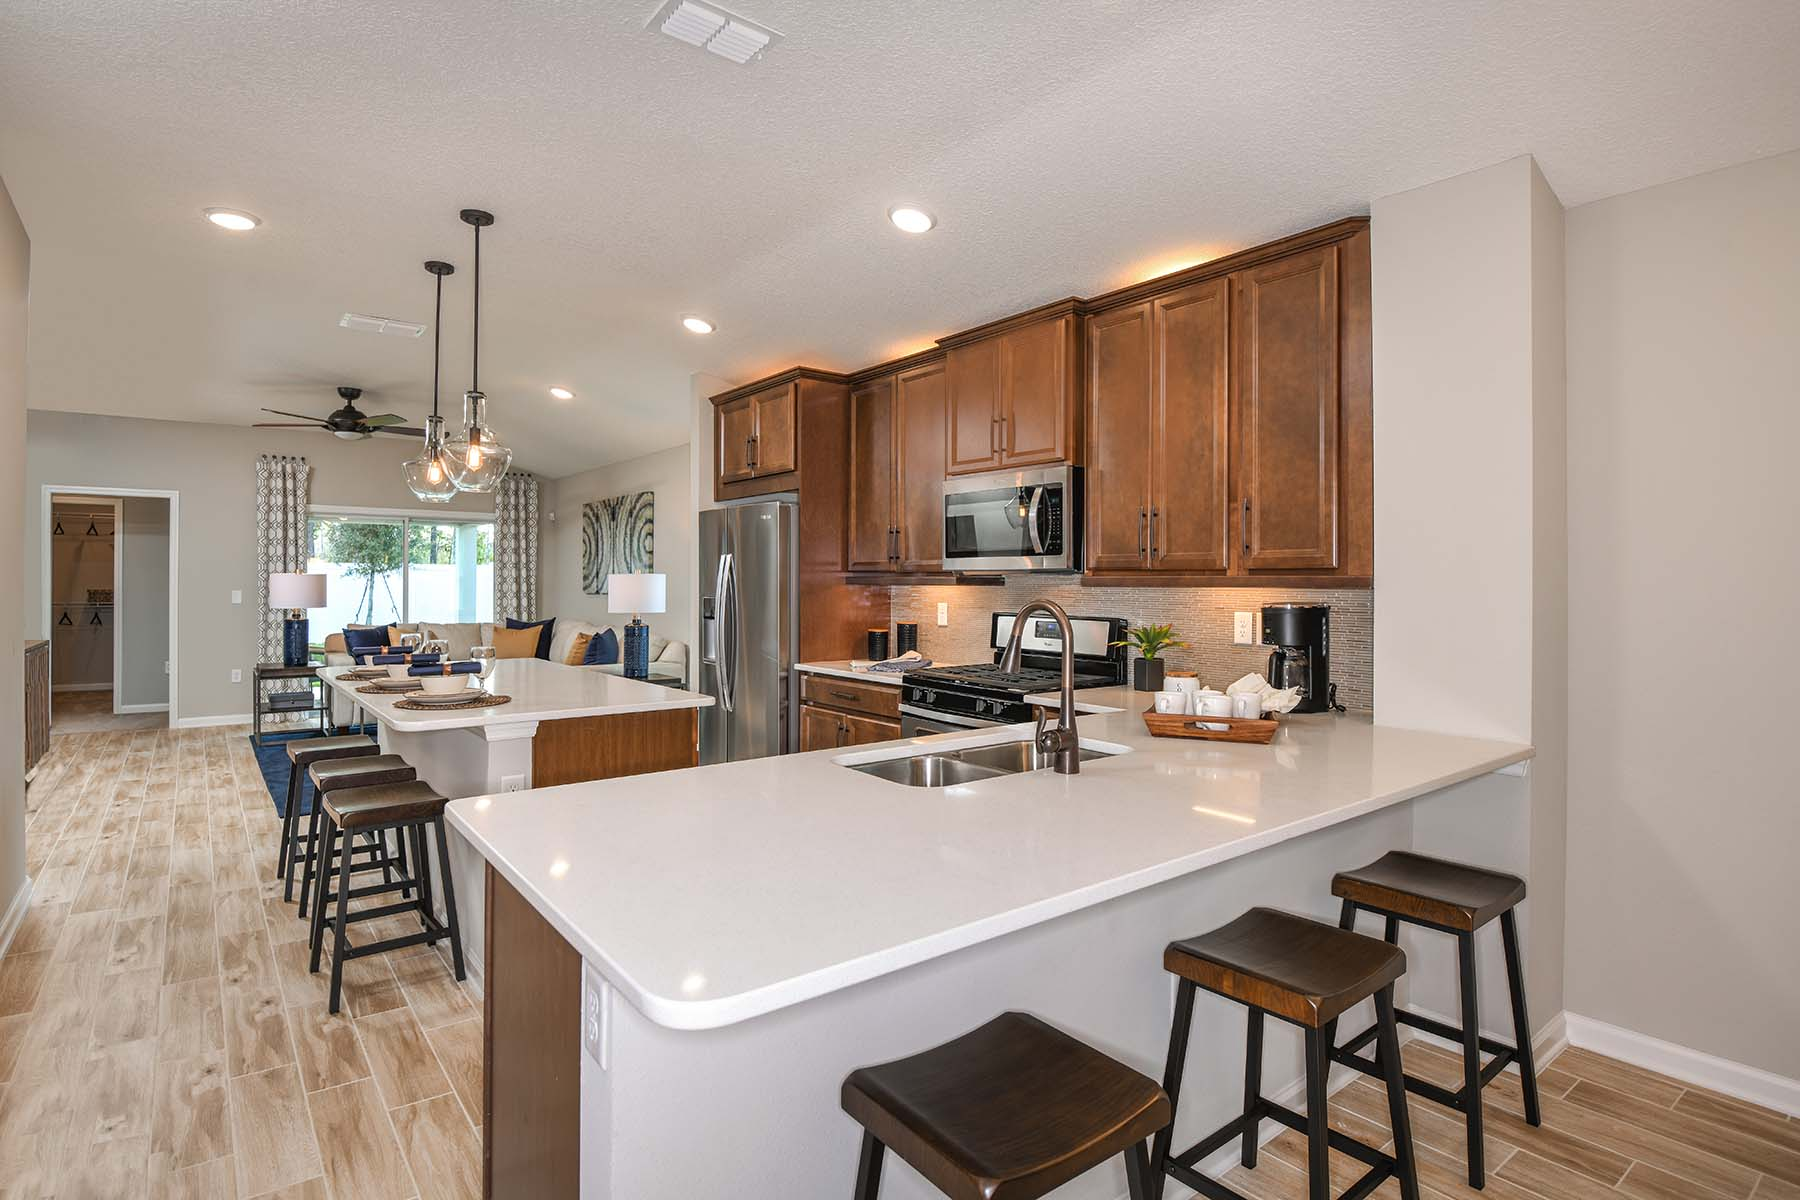 Carrabelle Plan Kitchen at RiverTown - Haven in St. Johns Florida by Mattamy Homes